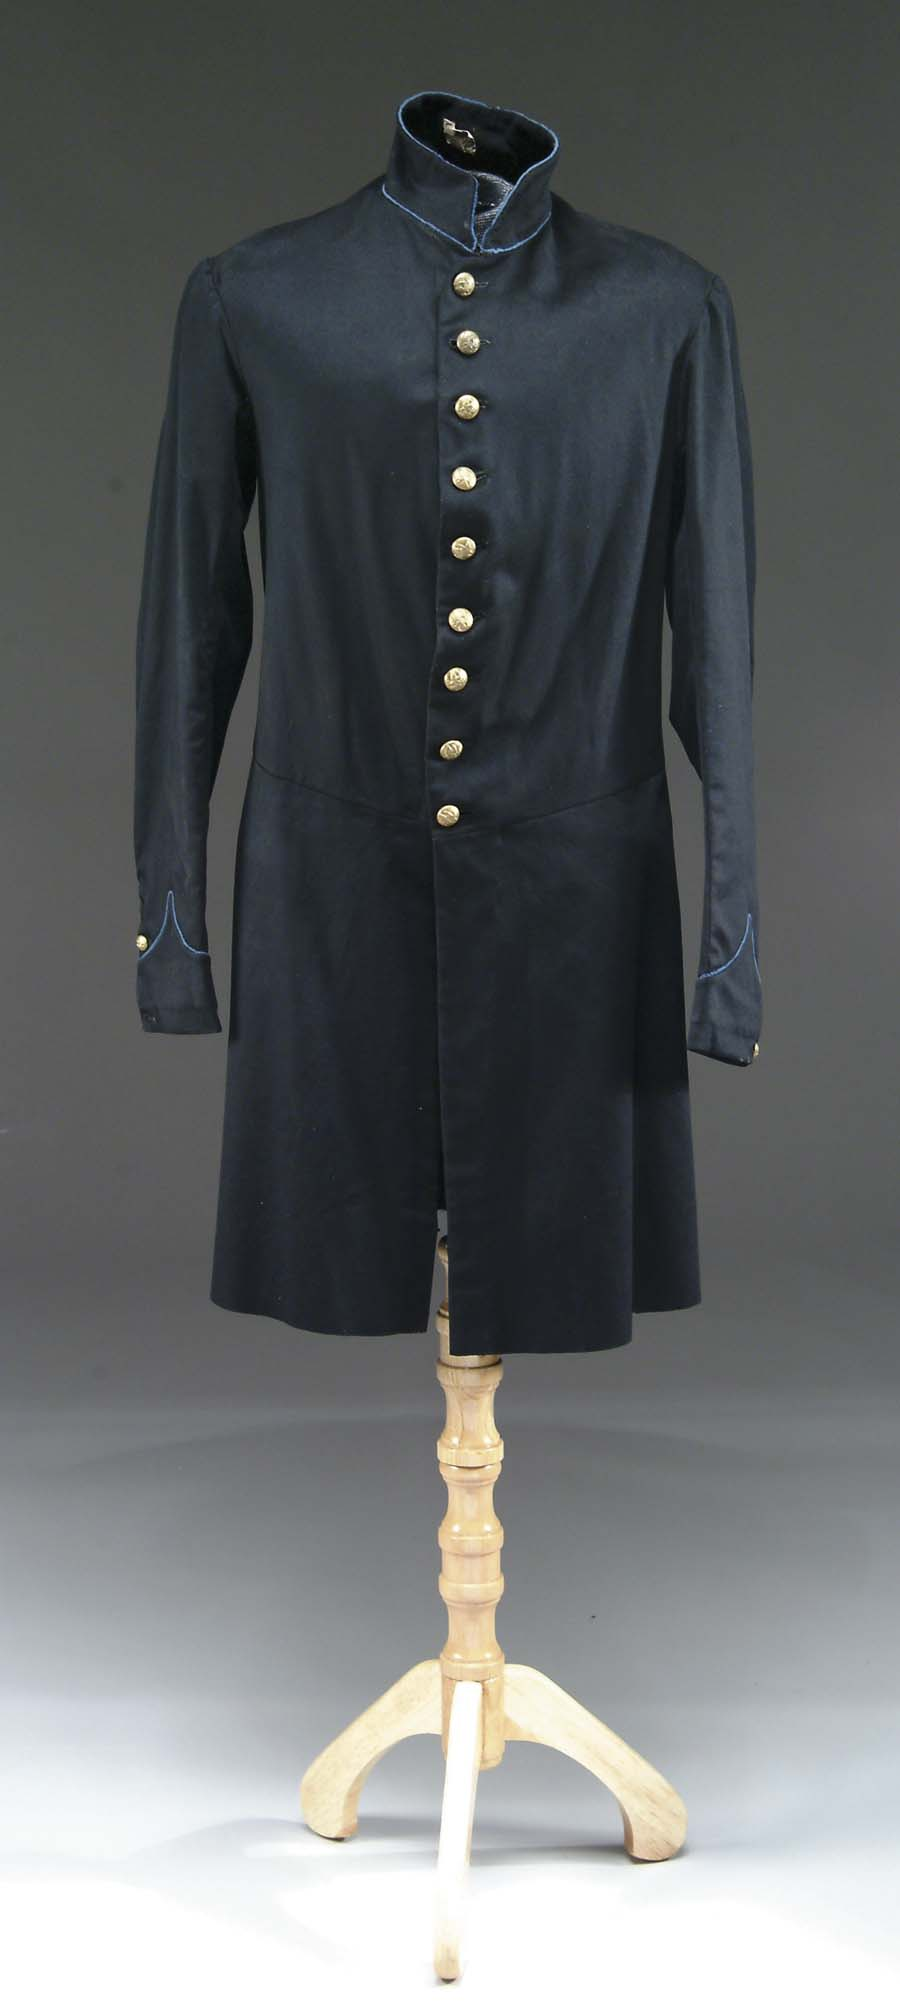 CIVIL WAR STYLE INFANTRY ENLISTED MAN'S